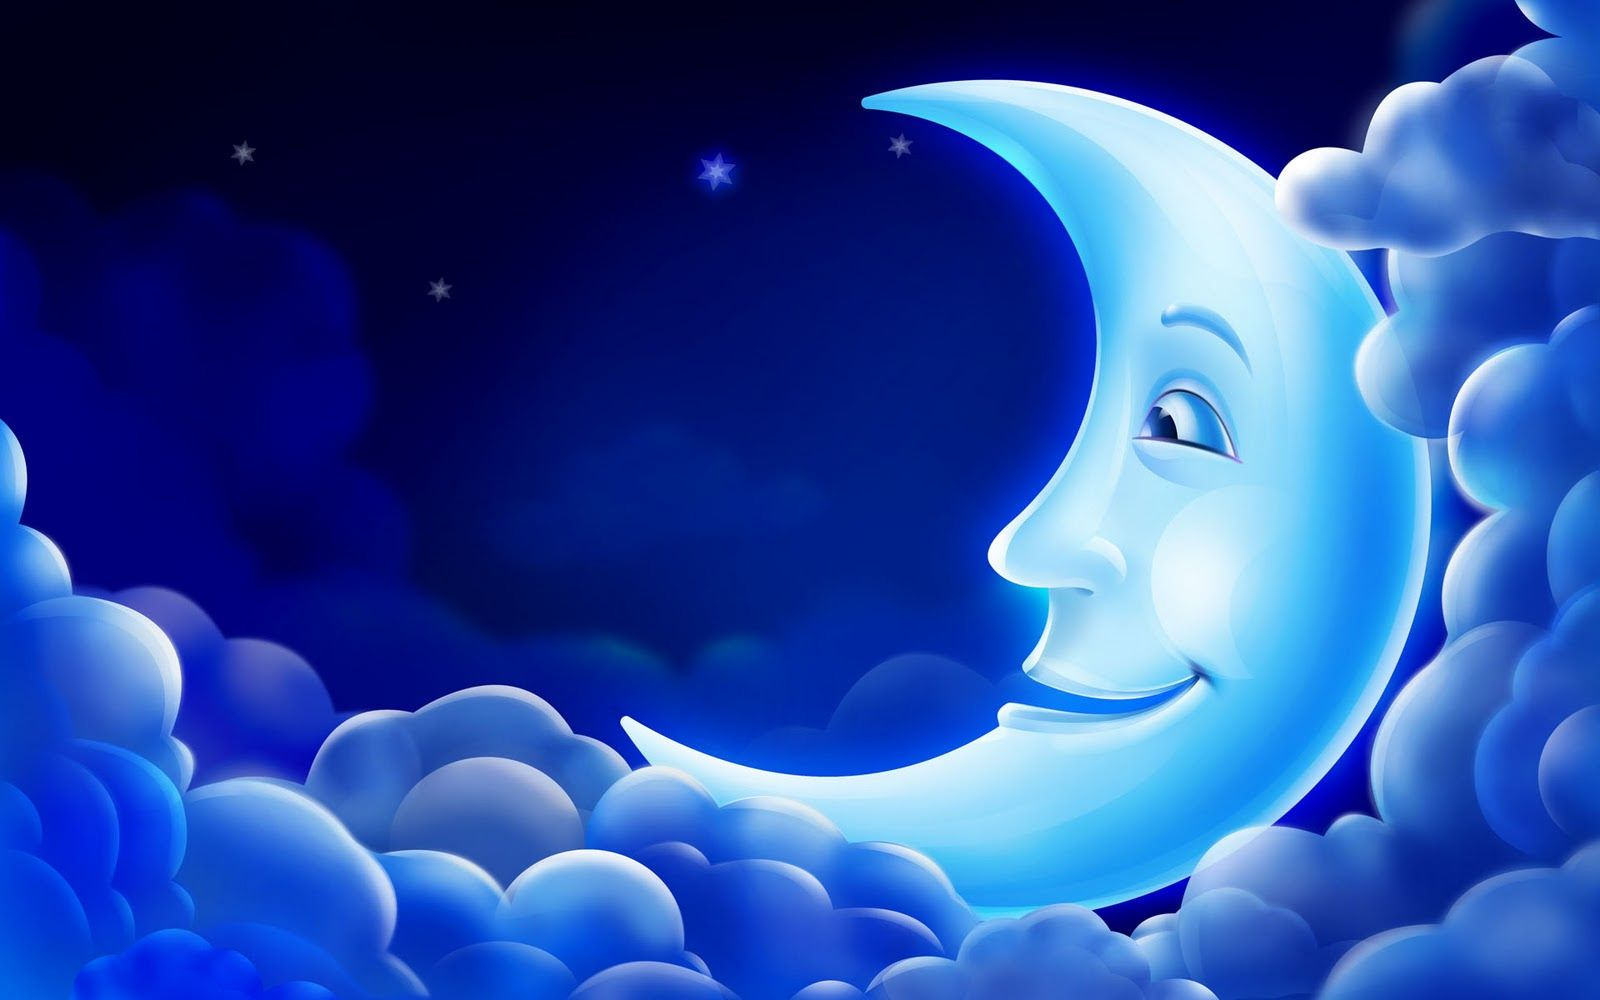 Blue Moon 3d Animation Wallpaper Free Animated Wallpaper 3d Animation Wallpaper Star Wallpaper